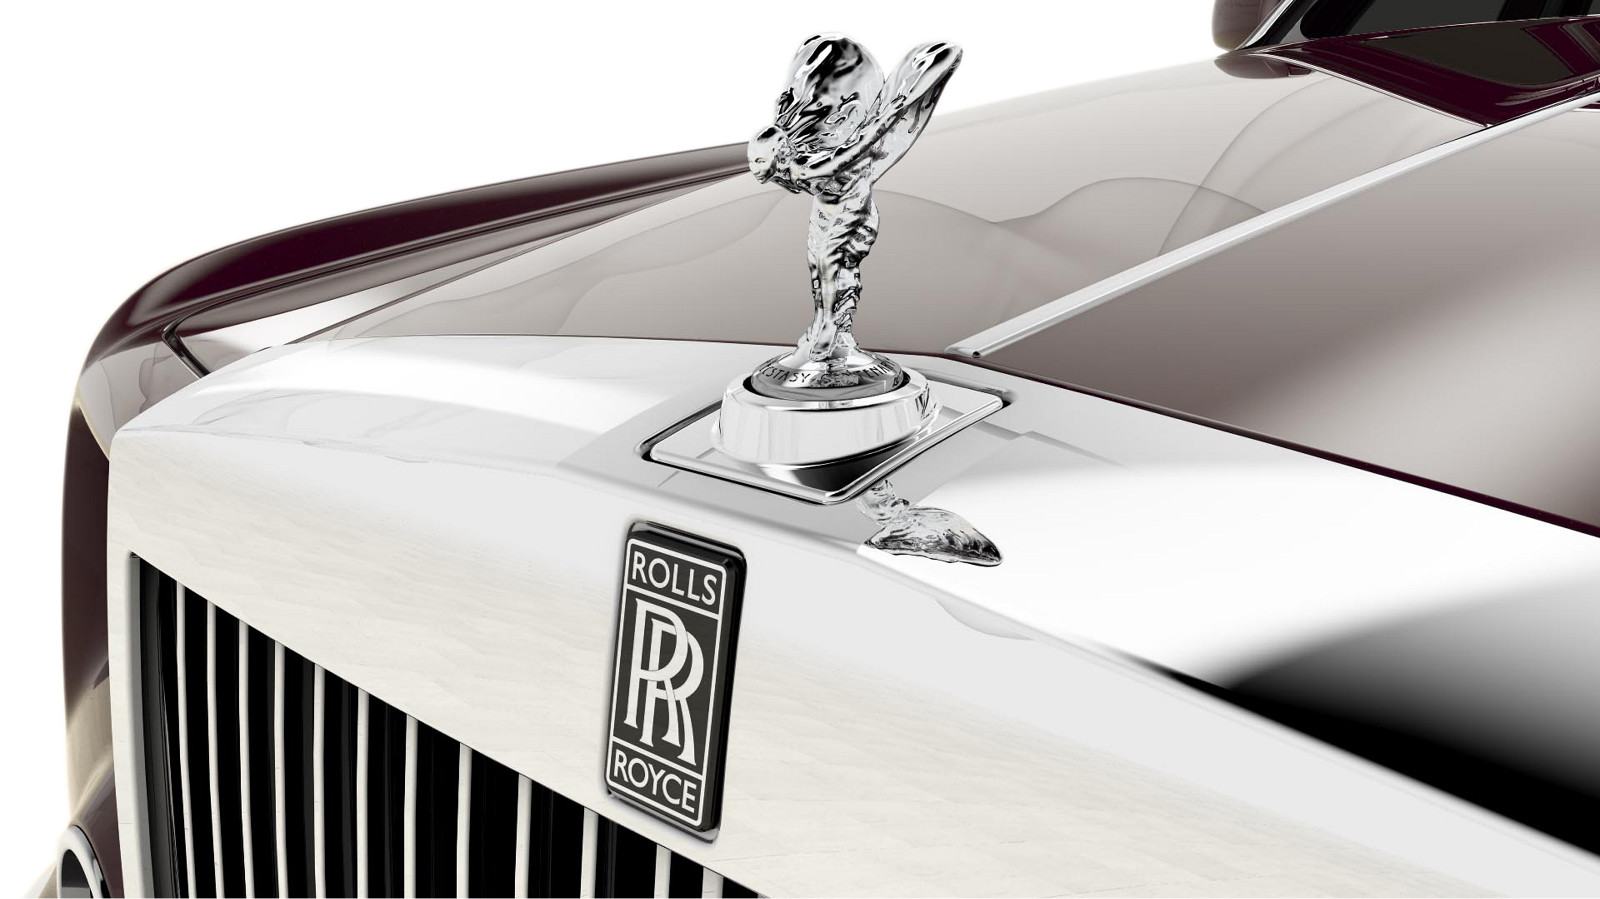 Rolls-Royce Spirit of Ecstasy Centenary Collection Pedro Topete Apple Blog Portugal